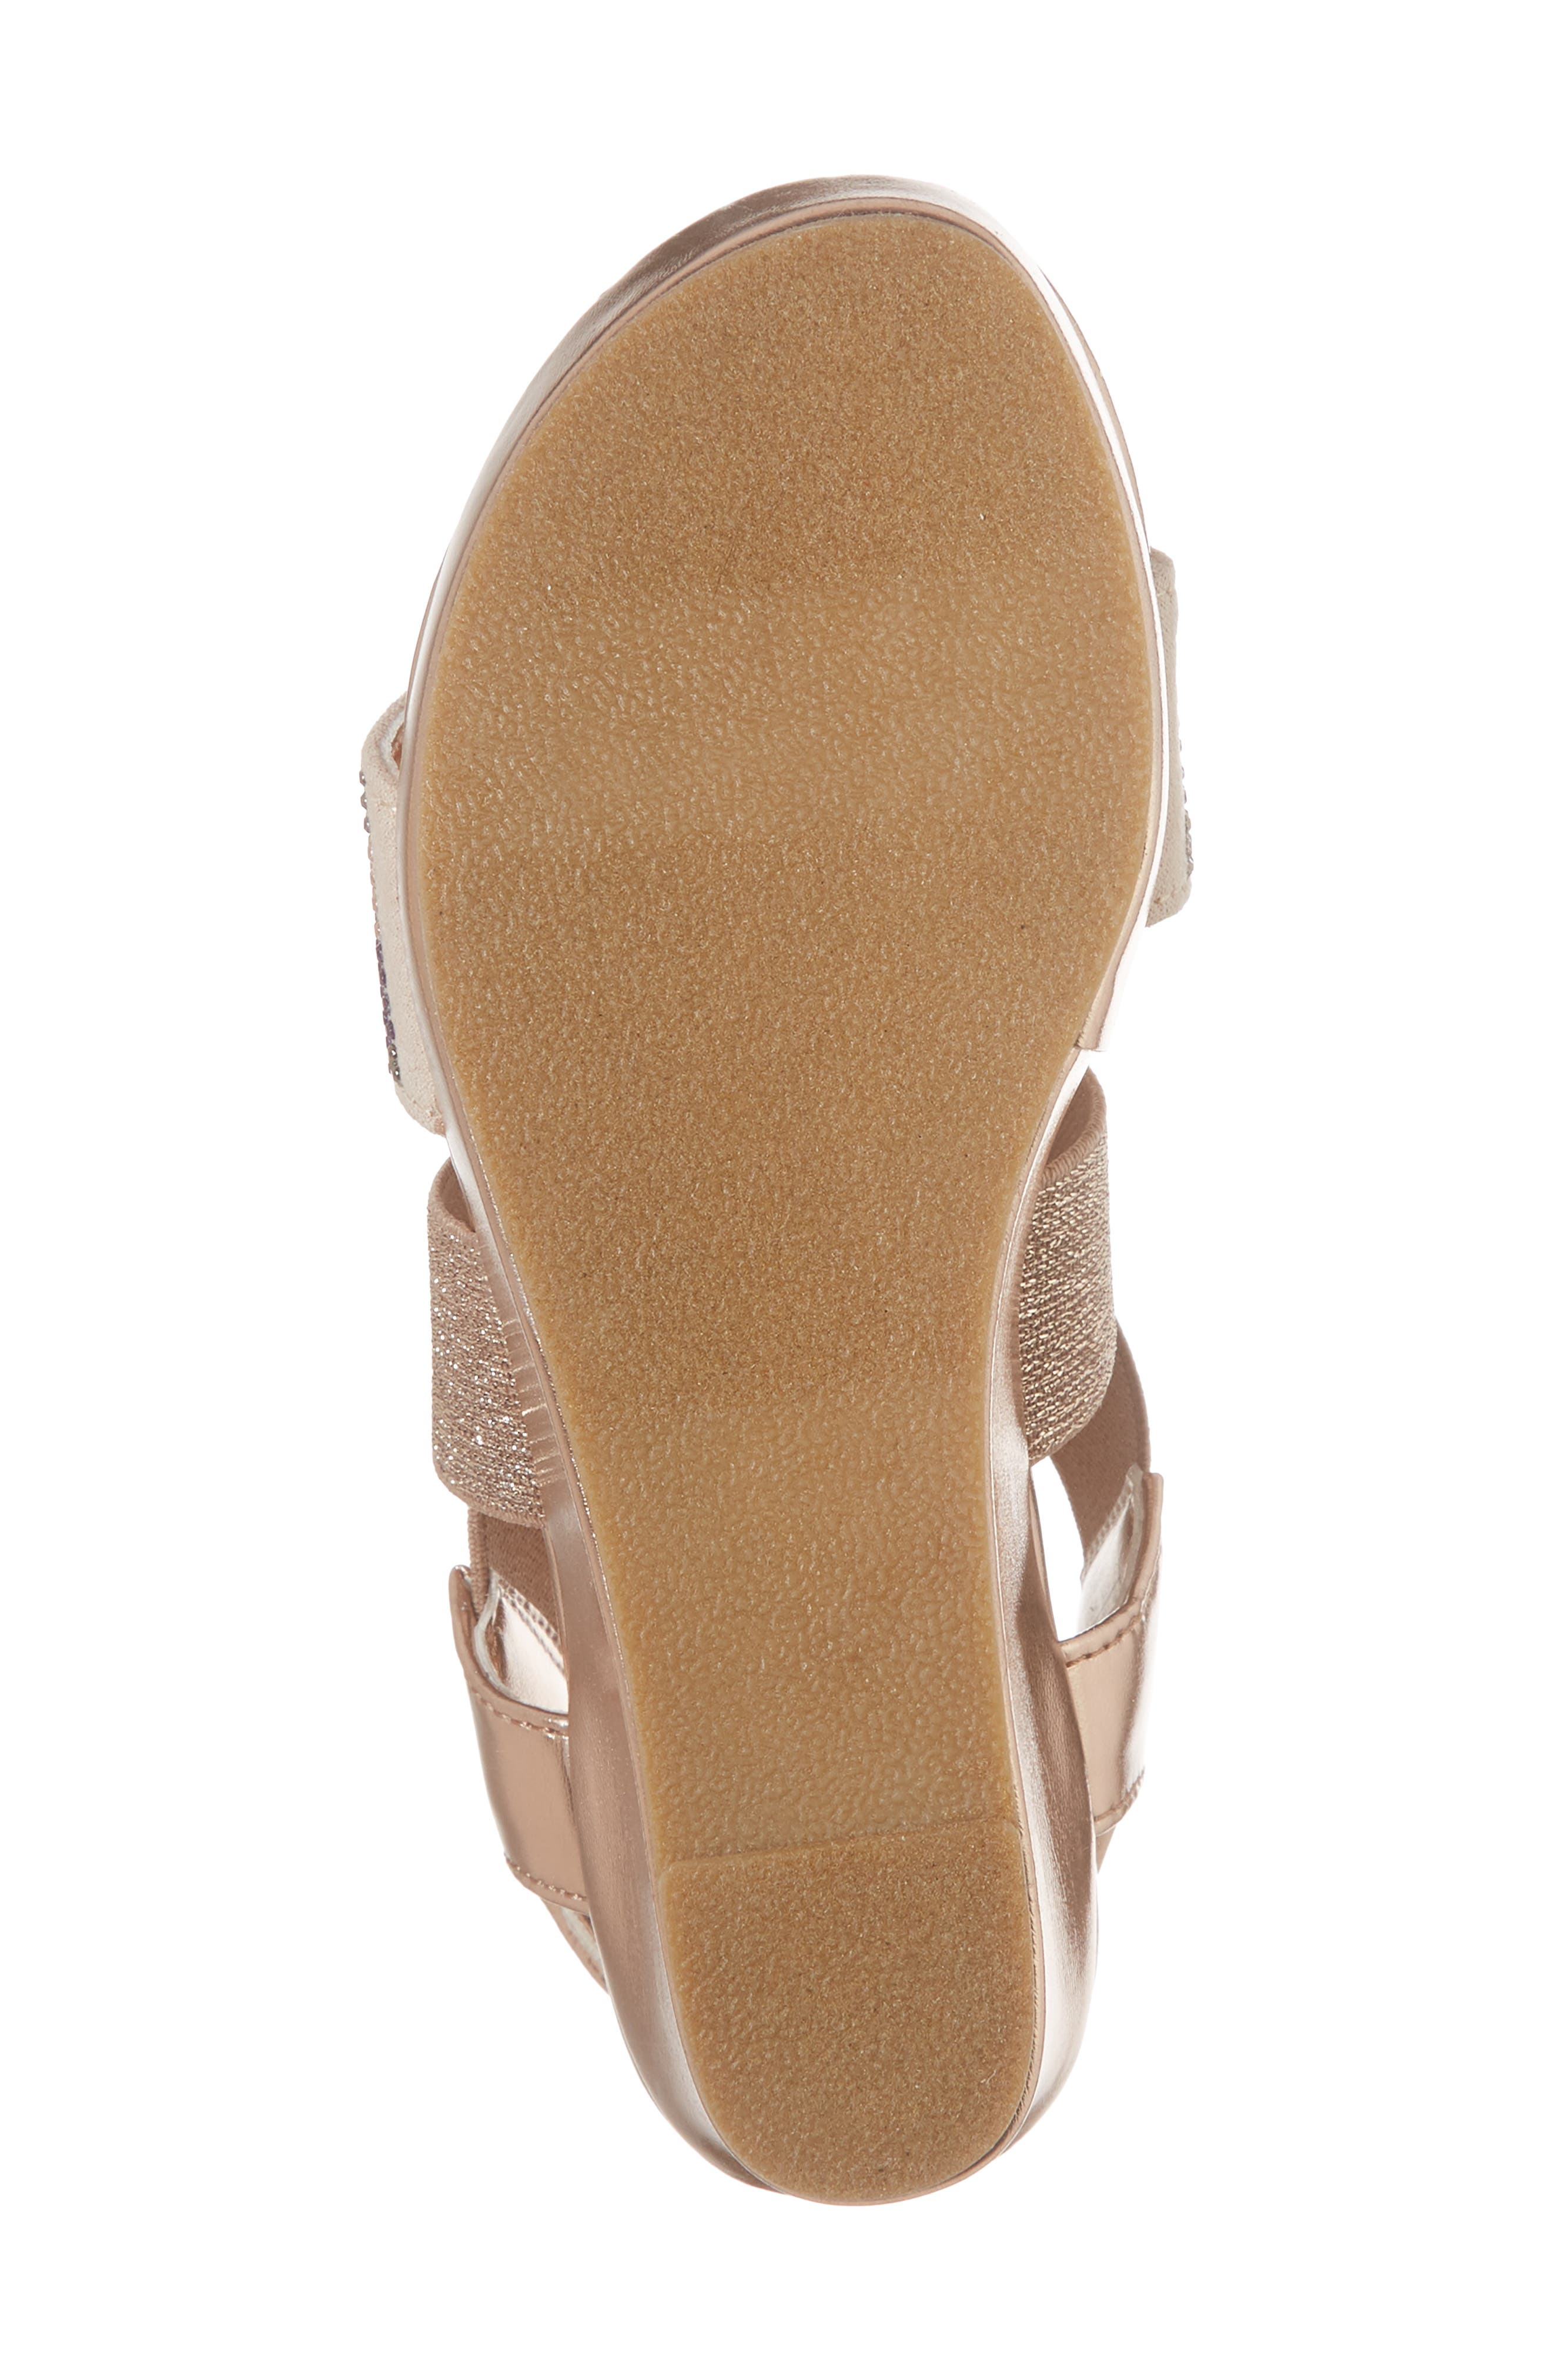 Reaction Kenneth Cole Reed Mamba Embellished Wedge Sandal,                             Alternate thumbnail 6, color,                             220